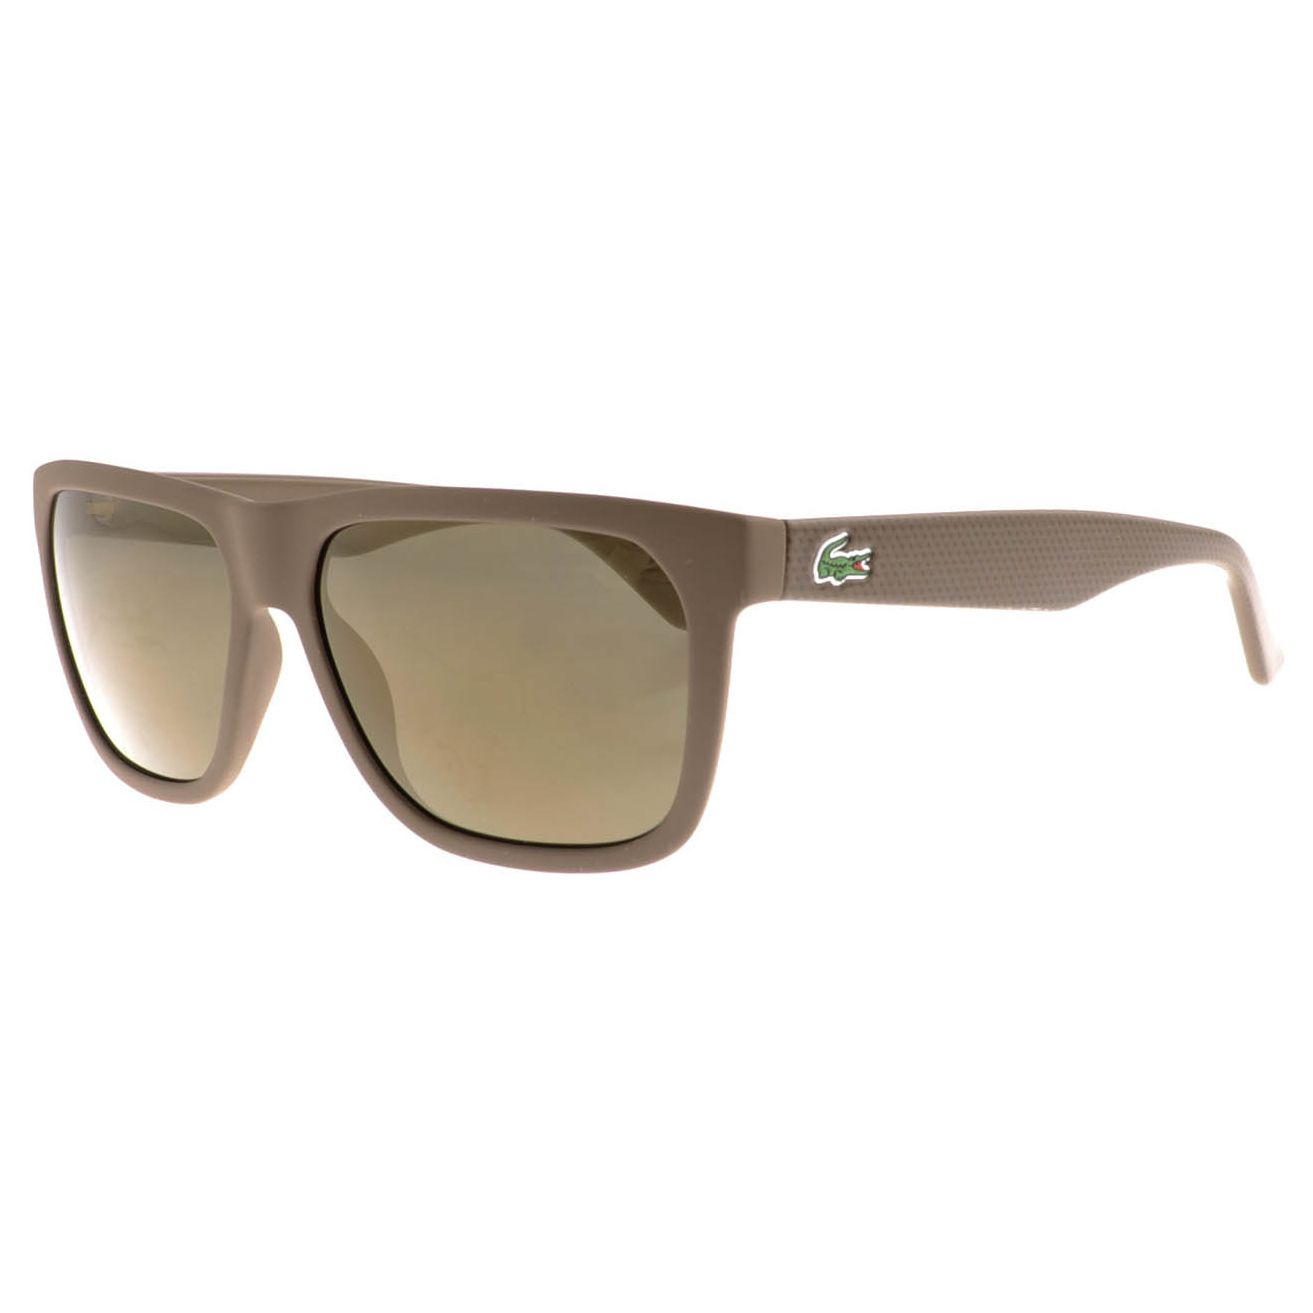 3e42445ee2 Sunglasses   Lacoste L732S Sunglasses Matte Brown   Lacoste Sunglasses Mens  Designer Sunglasses Lacoste Eyewear Online   Mainline Menswear Official ...